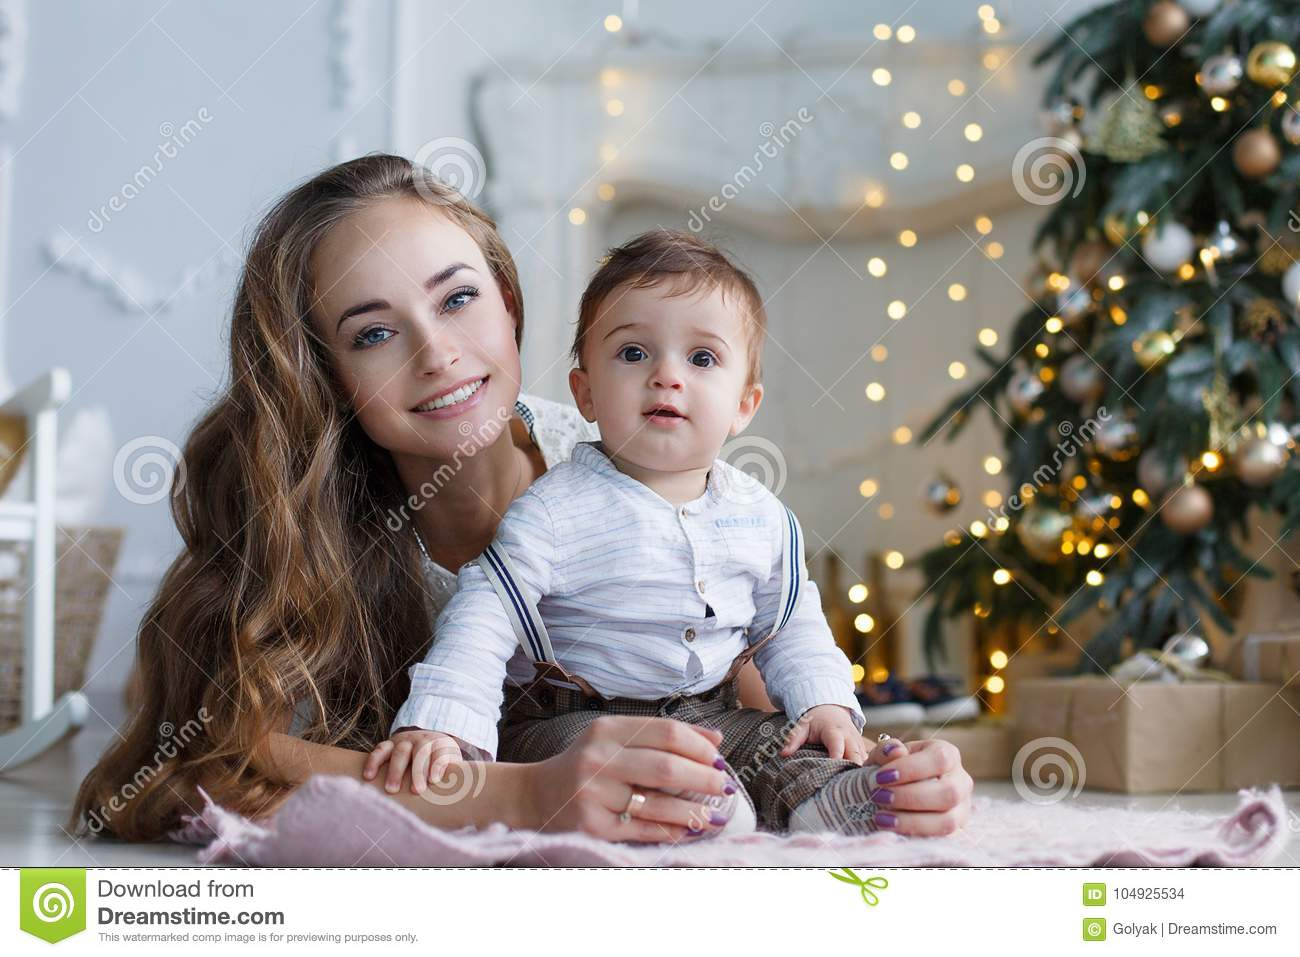 Mom With A Small Son Near A Beautiful Christmas Tree In His House Stock Photo Image Of Garland Joyful 104925534